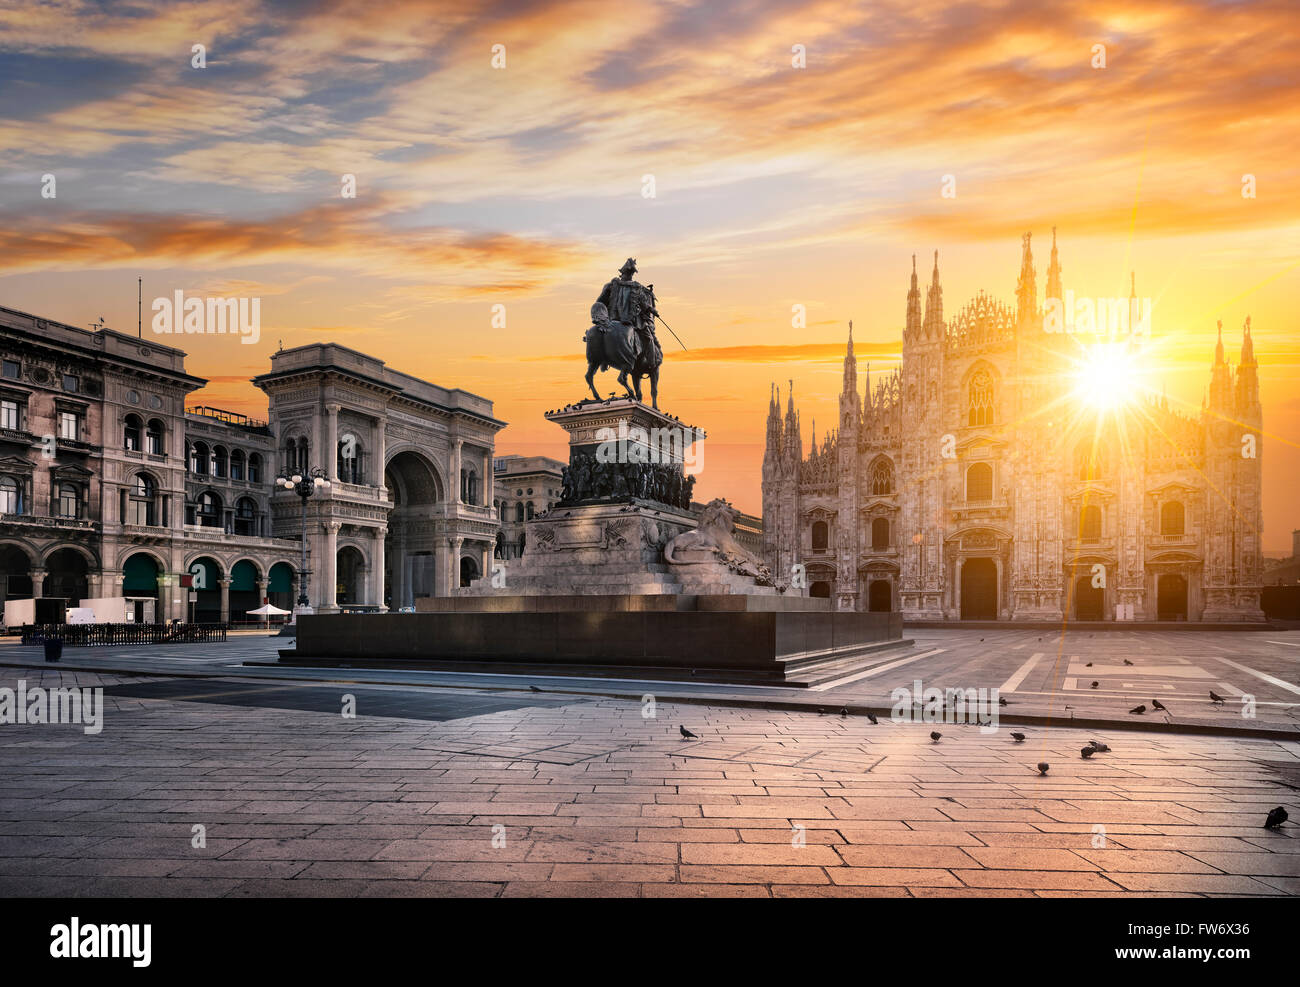 Duomo at sunrise, Milan, Italy, Europe. - Stock Image